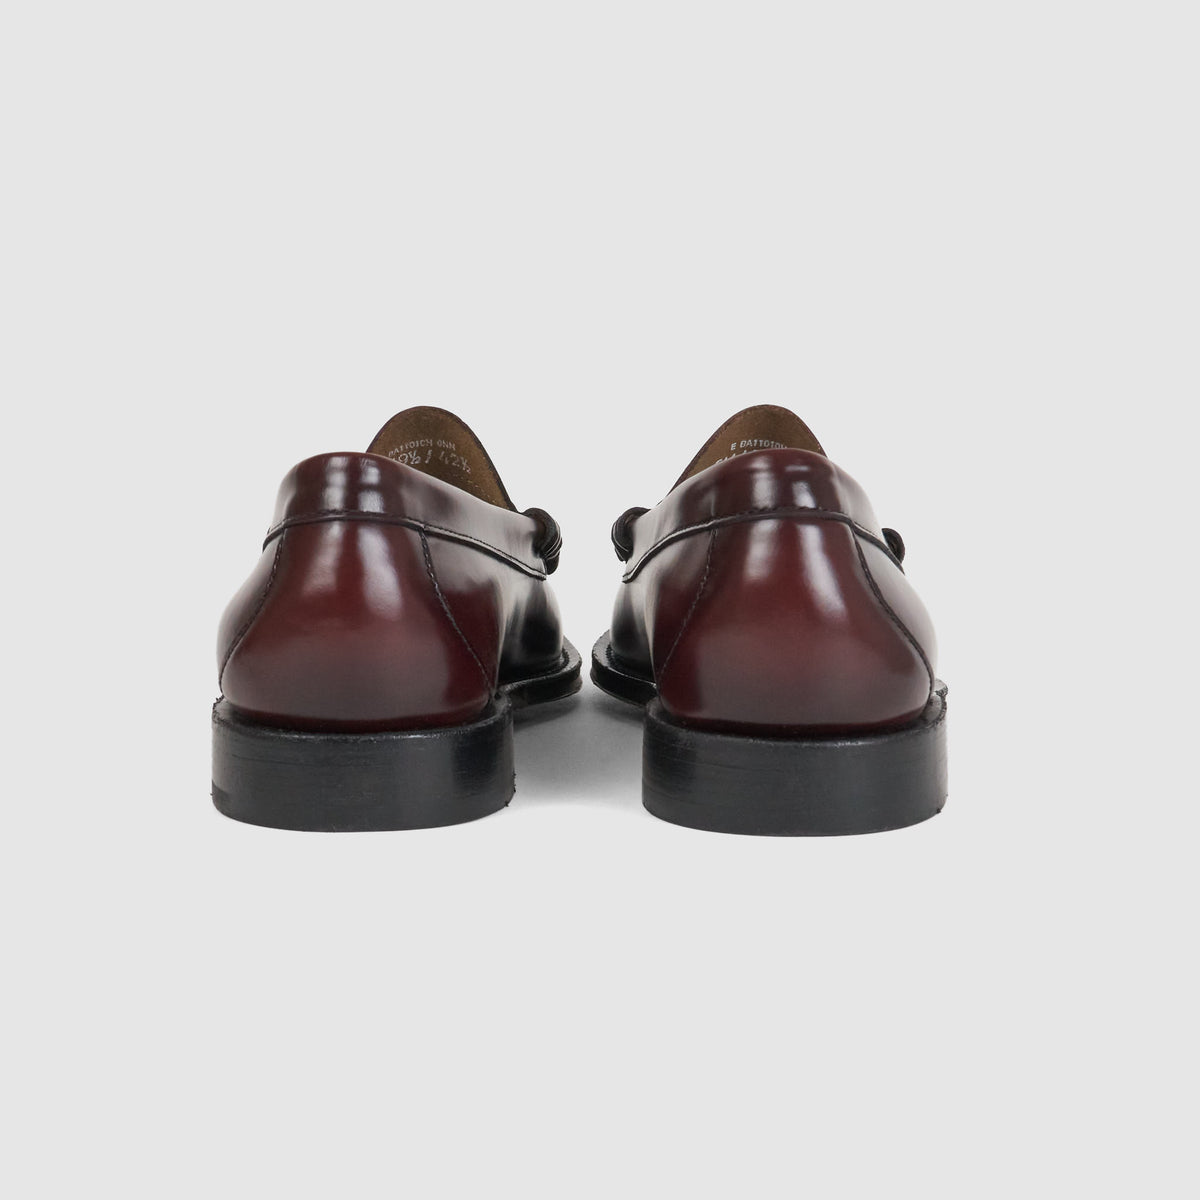 G.H. Bass & Co. Weejuns Penny Loafers